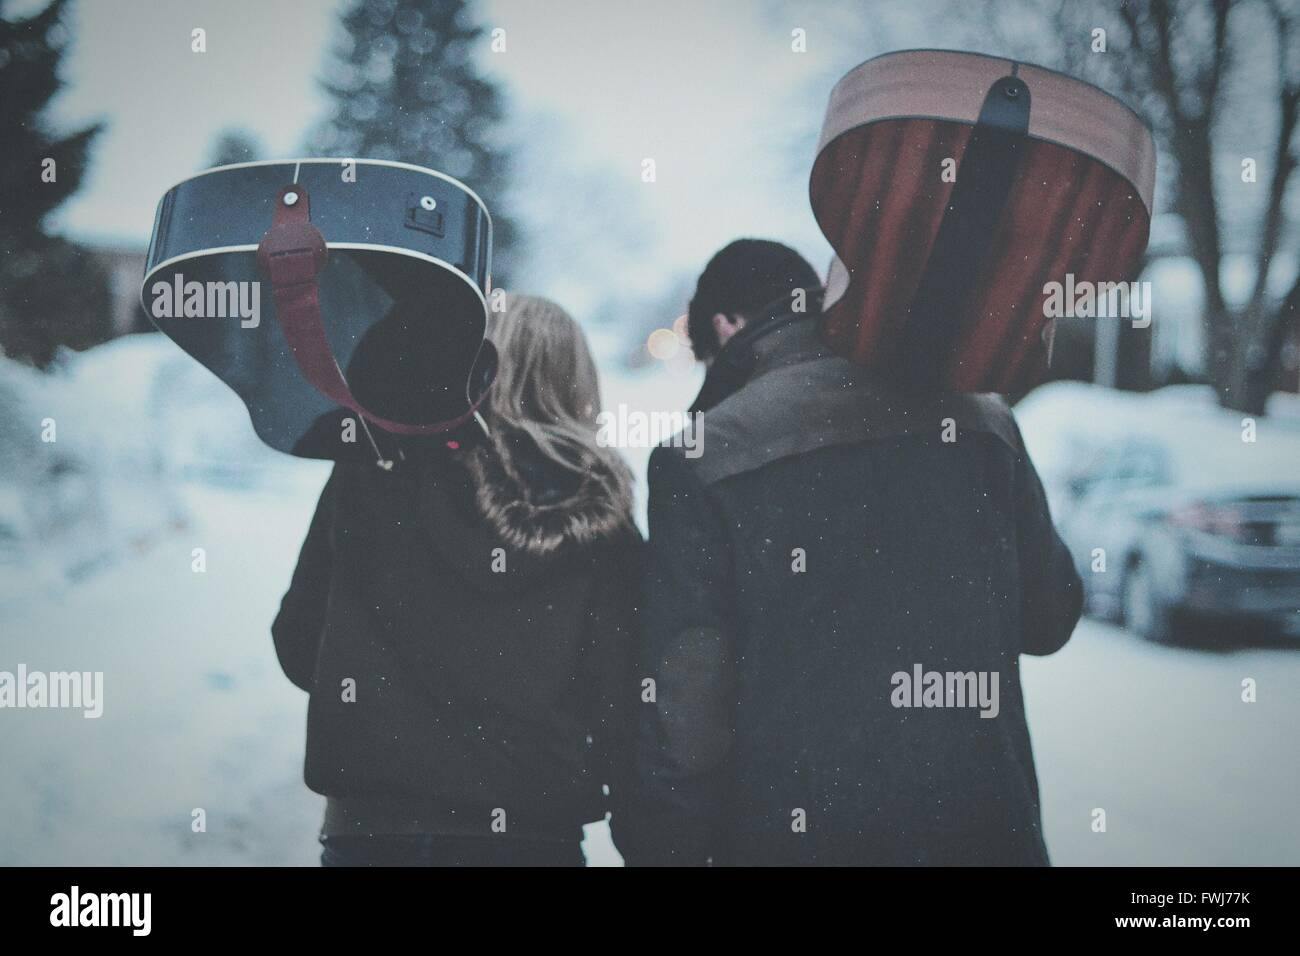 Rear View Of Friends Walking With Guitar Walking During Snowfall - Stock Image